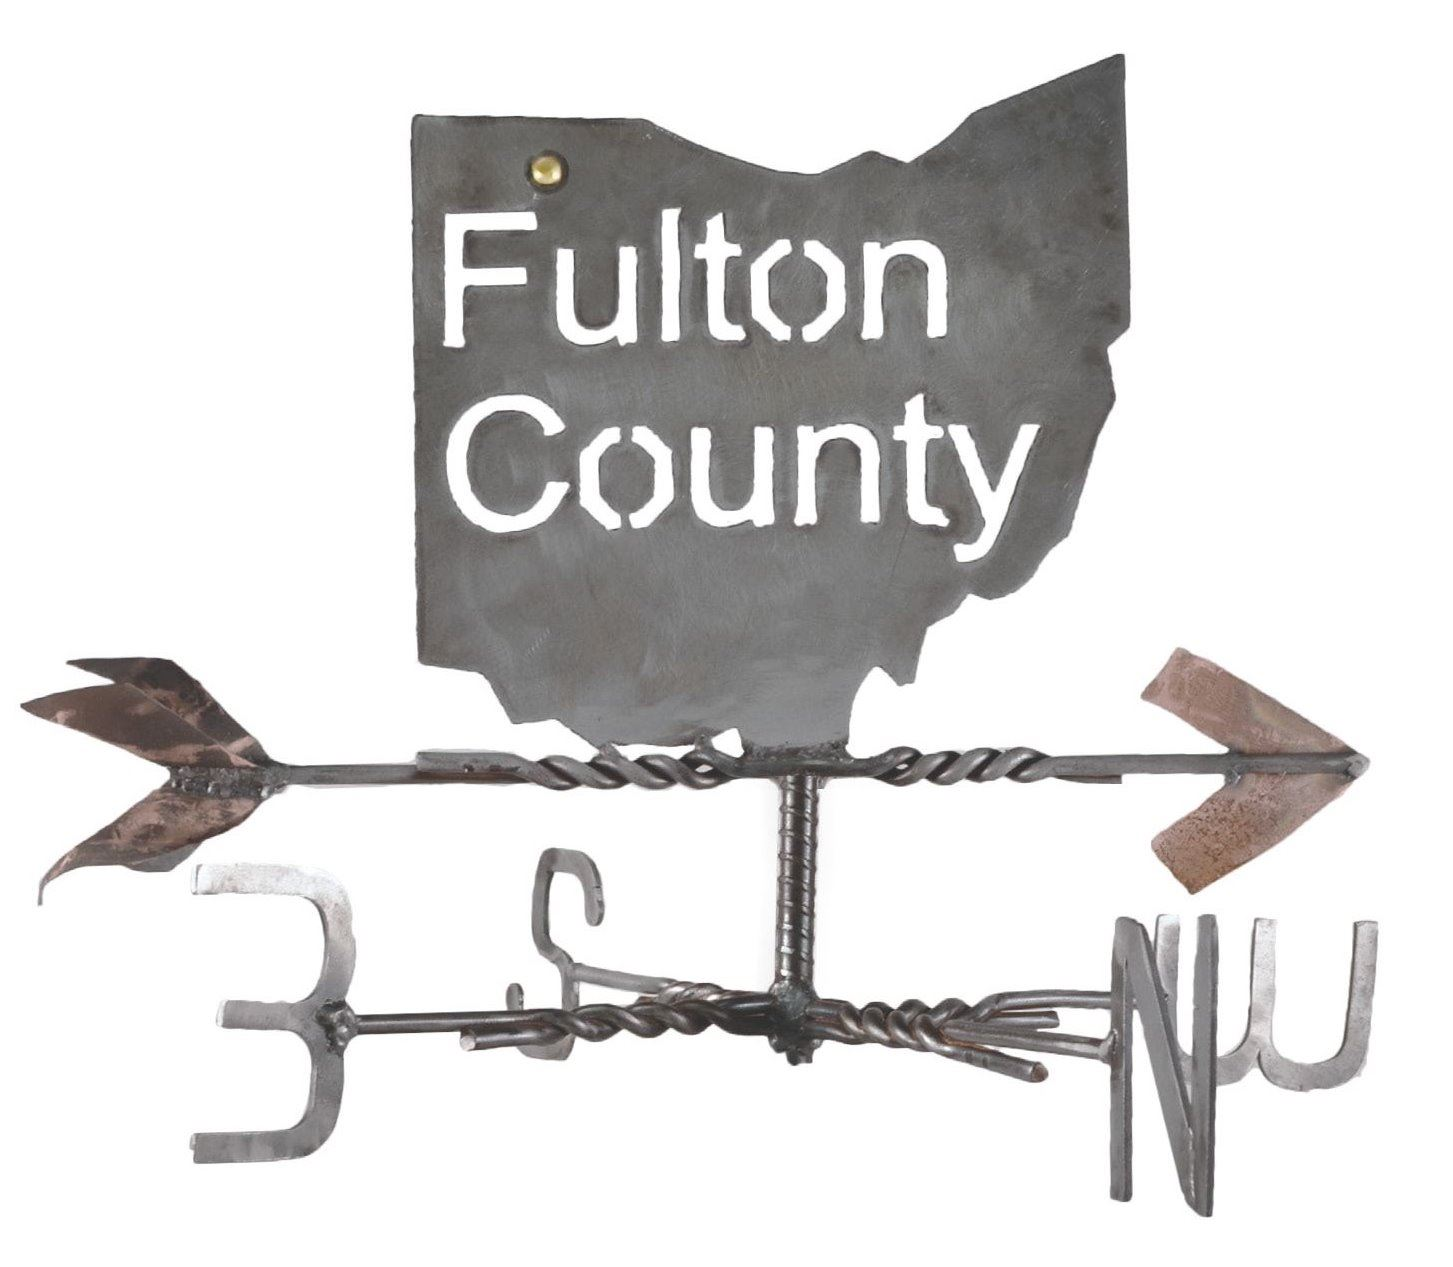 Fulton County Visitors Bureau weather vane logo